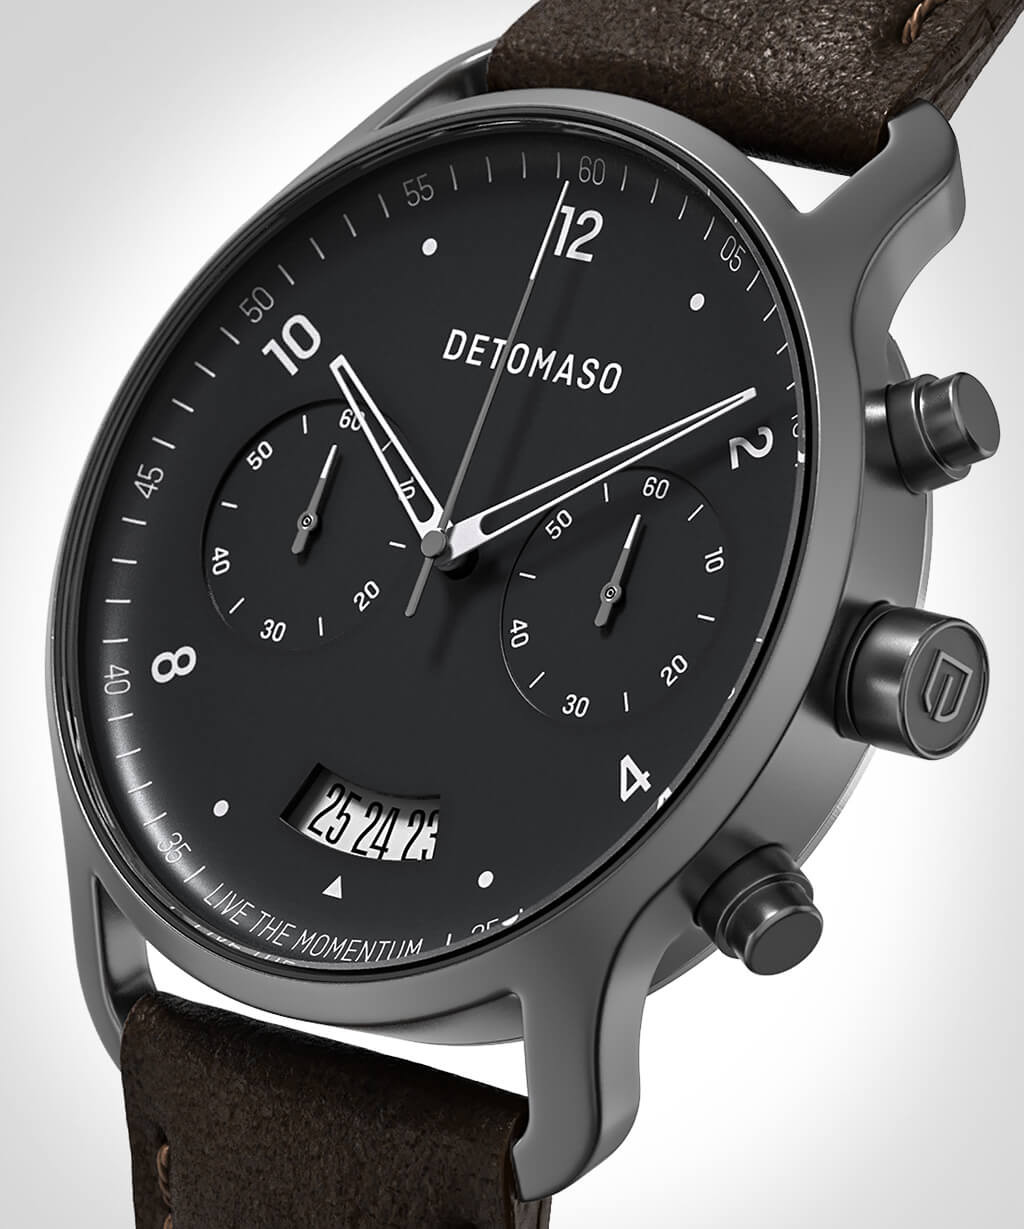 SORPASSO CHRONOGRAPH GREY - LEATHER STRAP DARK BRO